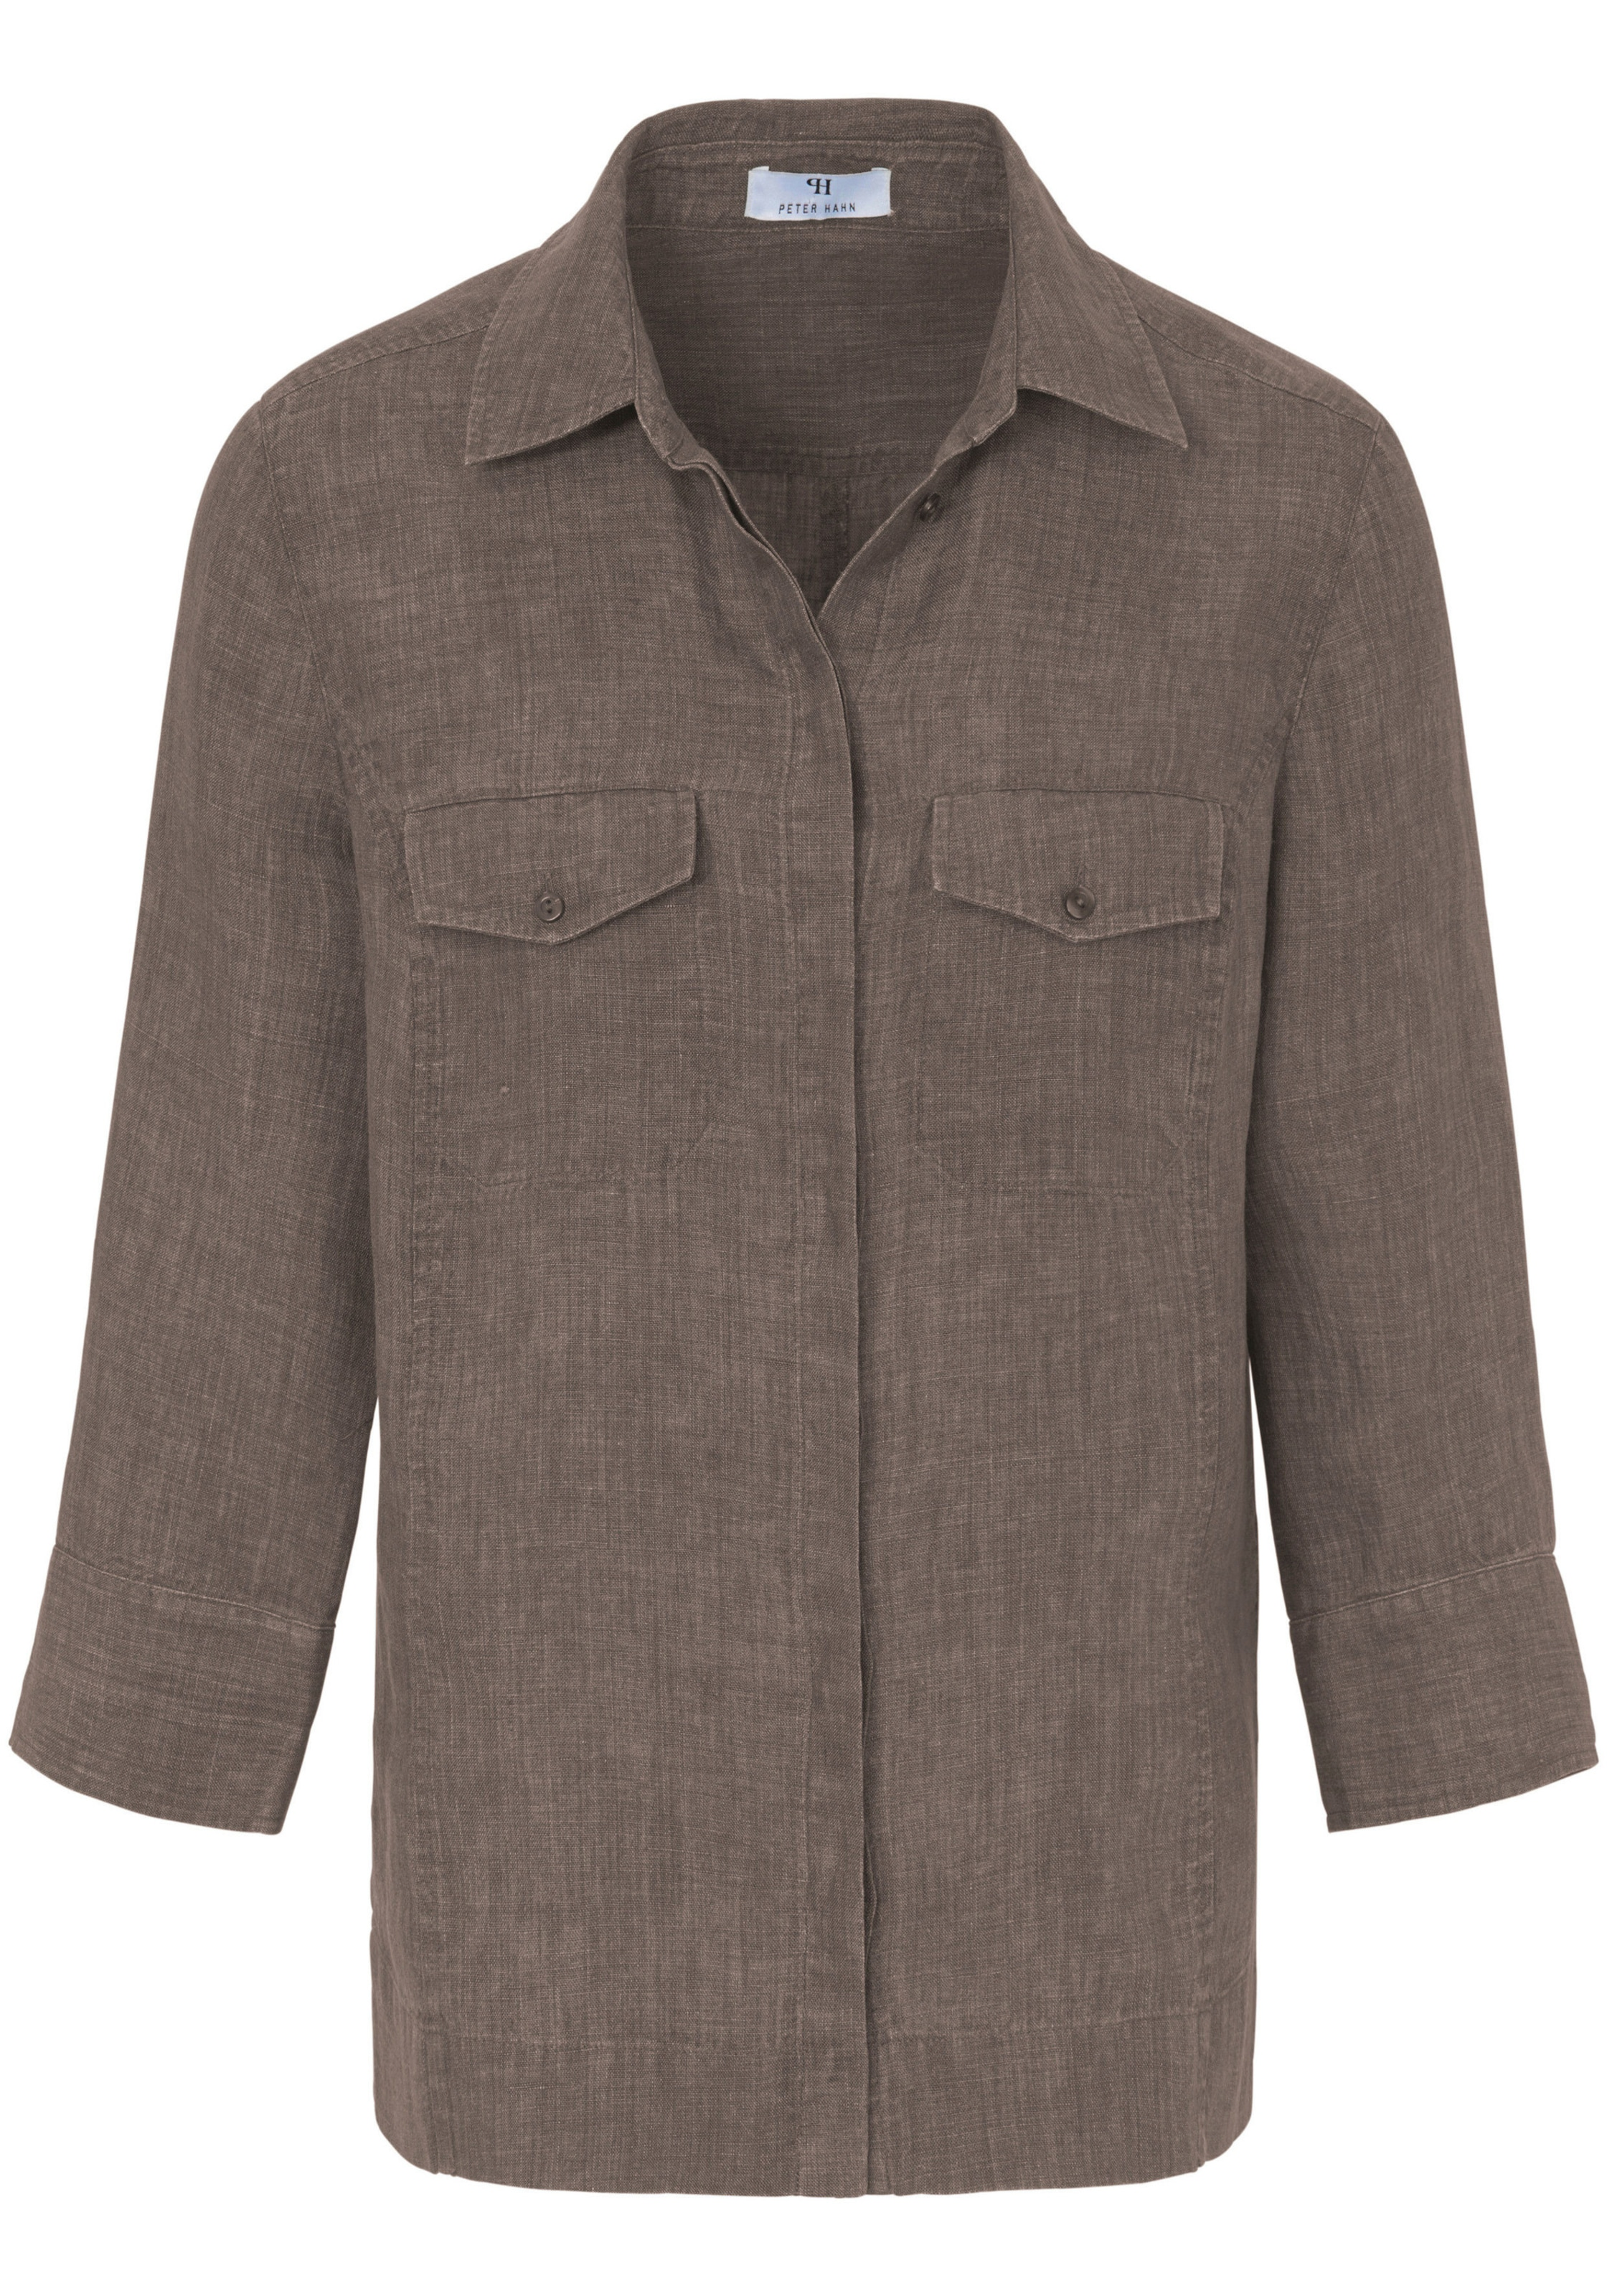 Hahn Bluse Peter Taupe Hahn In Peter In Taupe Bluse Peter wmN80n